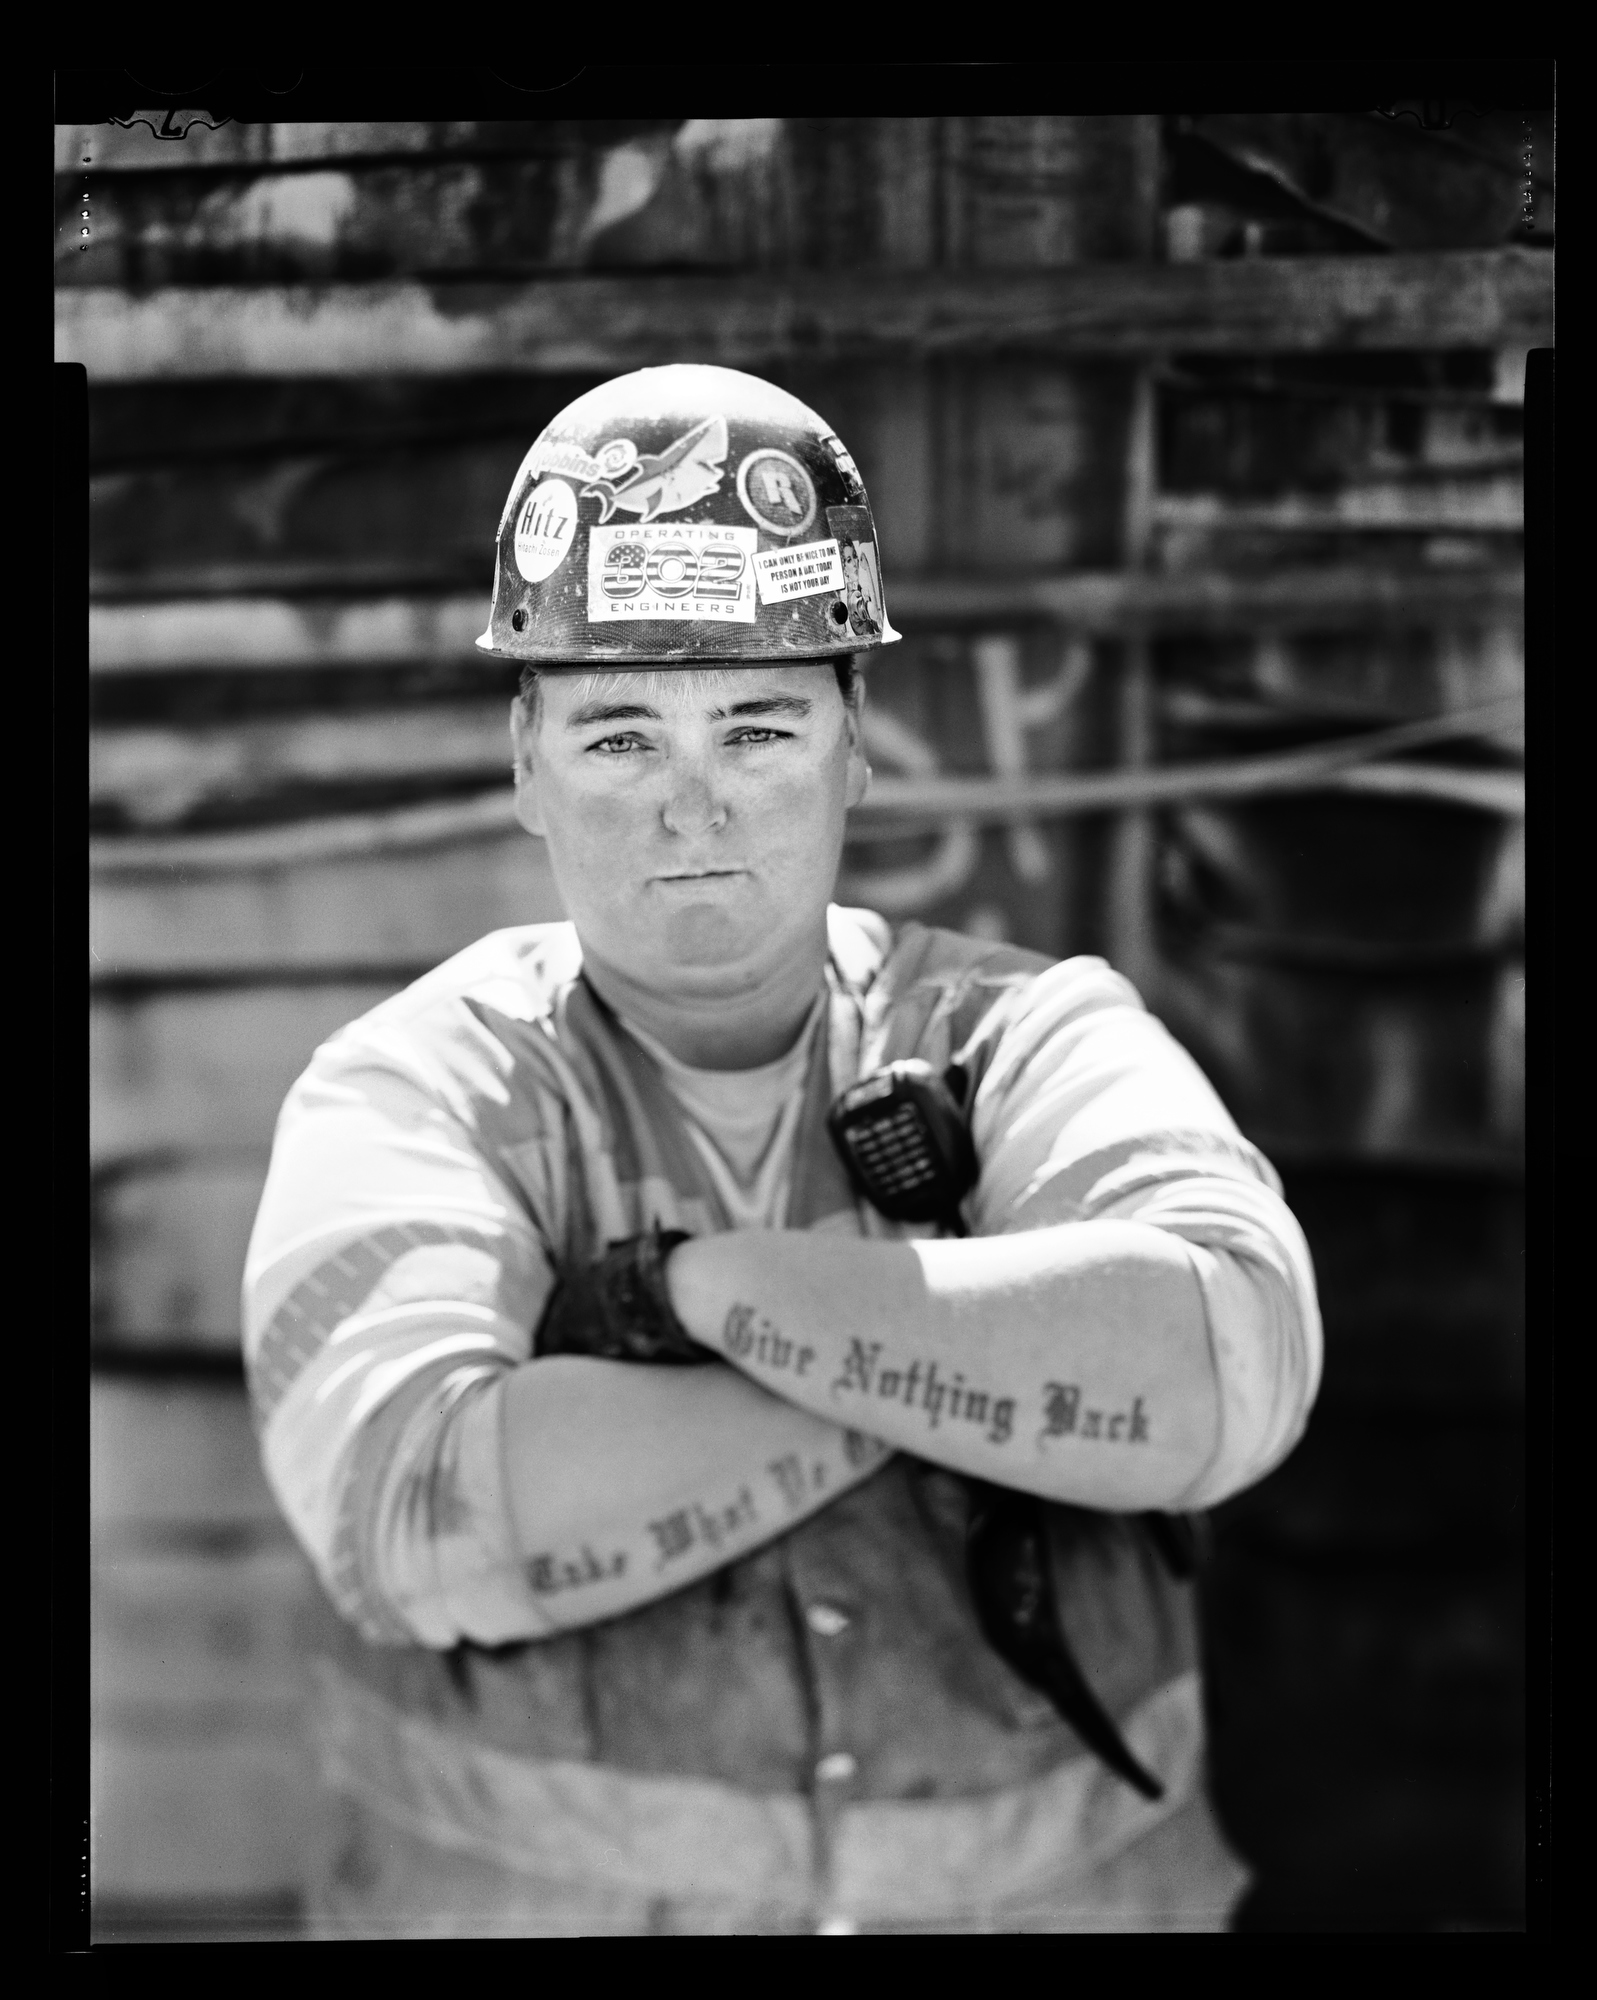 "Jamie Dicey, heavy equipment operator working on the tunnel boring project ""Brenda"" near Northgate Mall in Seattle. Photographed April 29, 2015 for the Women in the Trades portrait series on a 4x5 camera with black and white film."